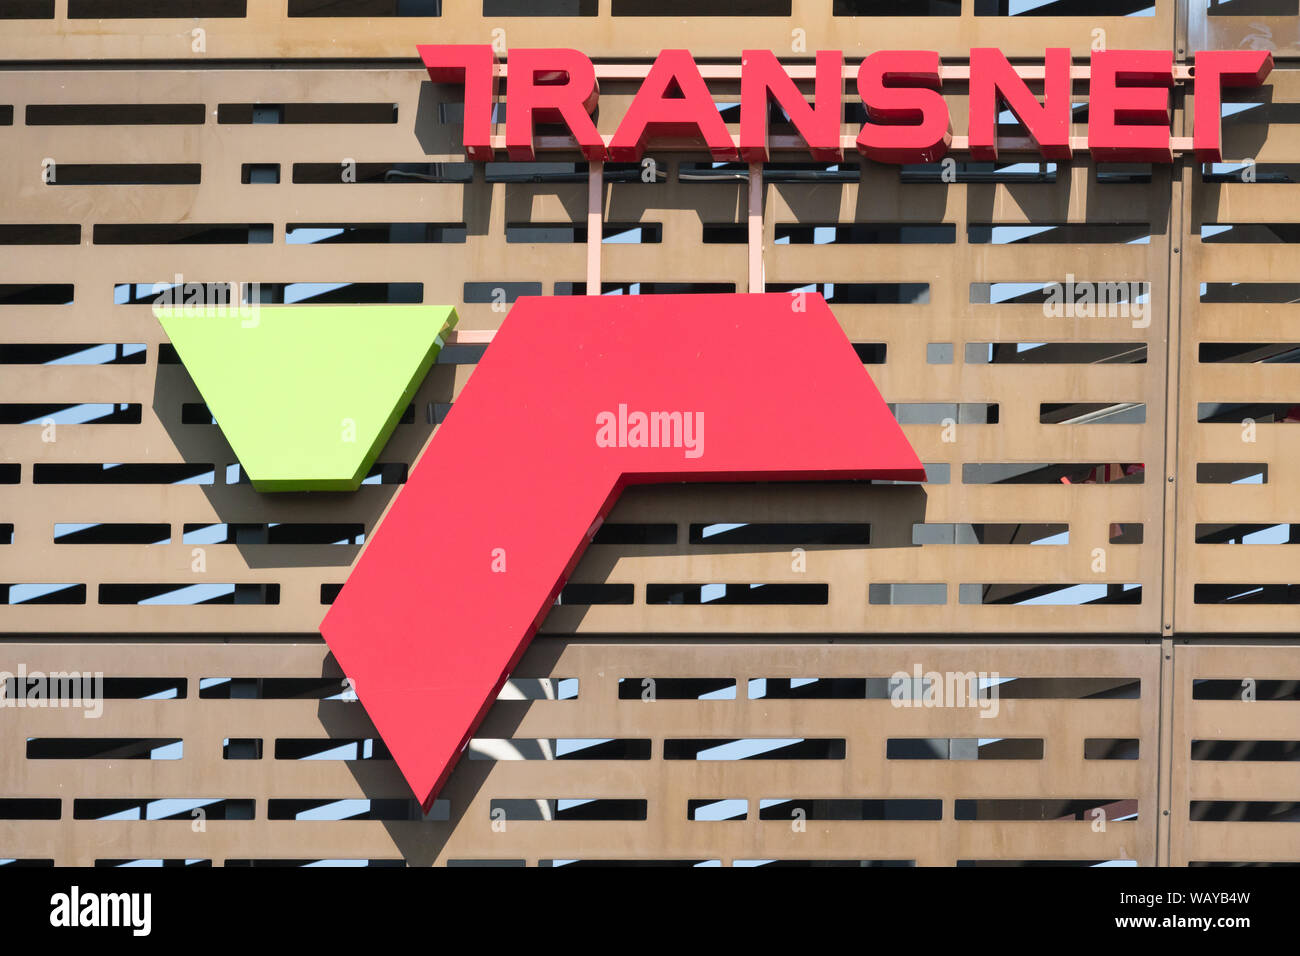 Transnet signage or sign in eye catching bright colourful letters on the side of a building in Johannesburg, Gauteng, South Africa Stock Photo